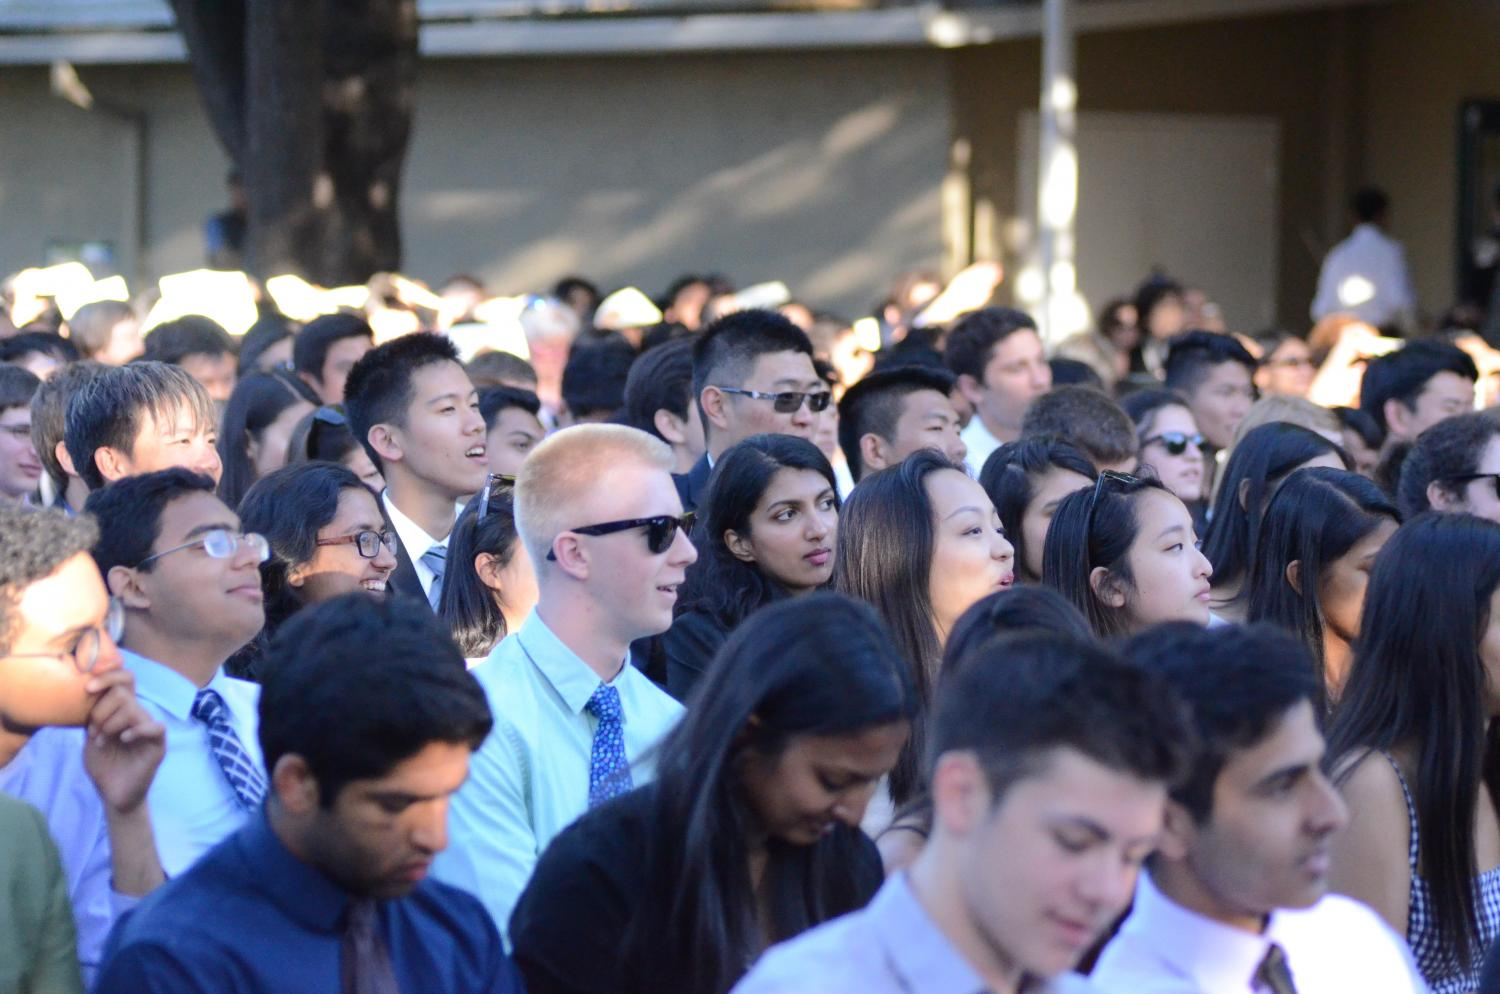 Members of the senior class listen to Baccalaureate faculty speaker Samuel Lepler's speech. Today's Baccalaureate ceremony took place in the Quad from 6:30 to 7:30 p.m.